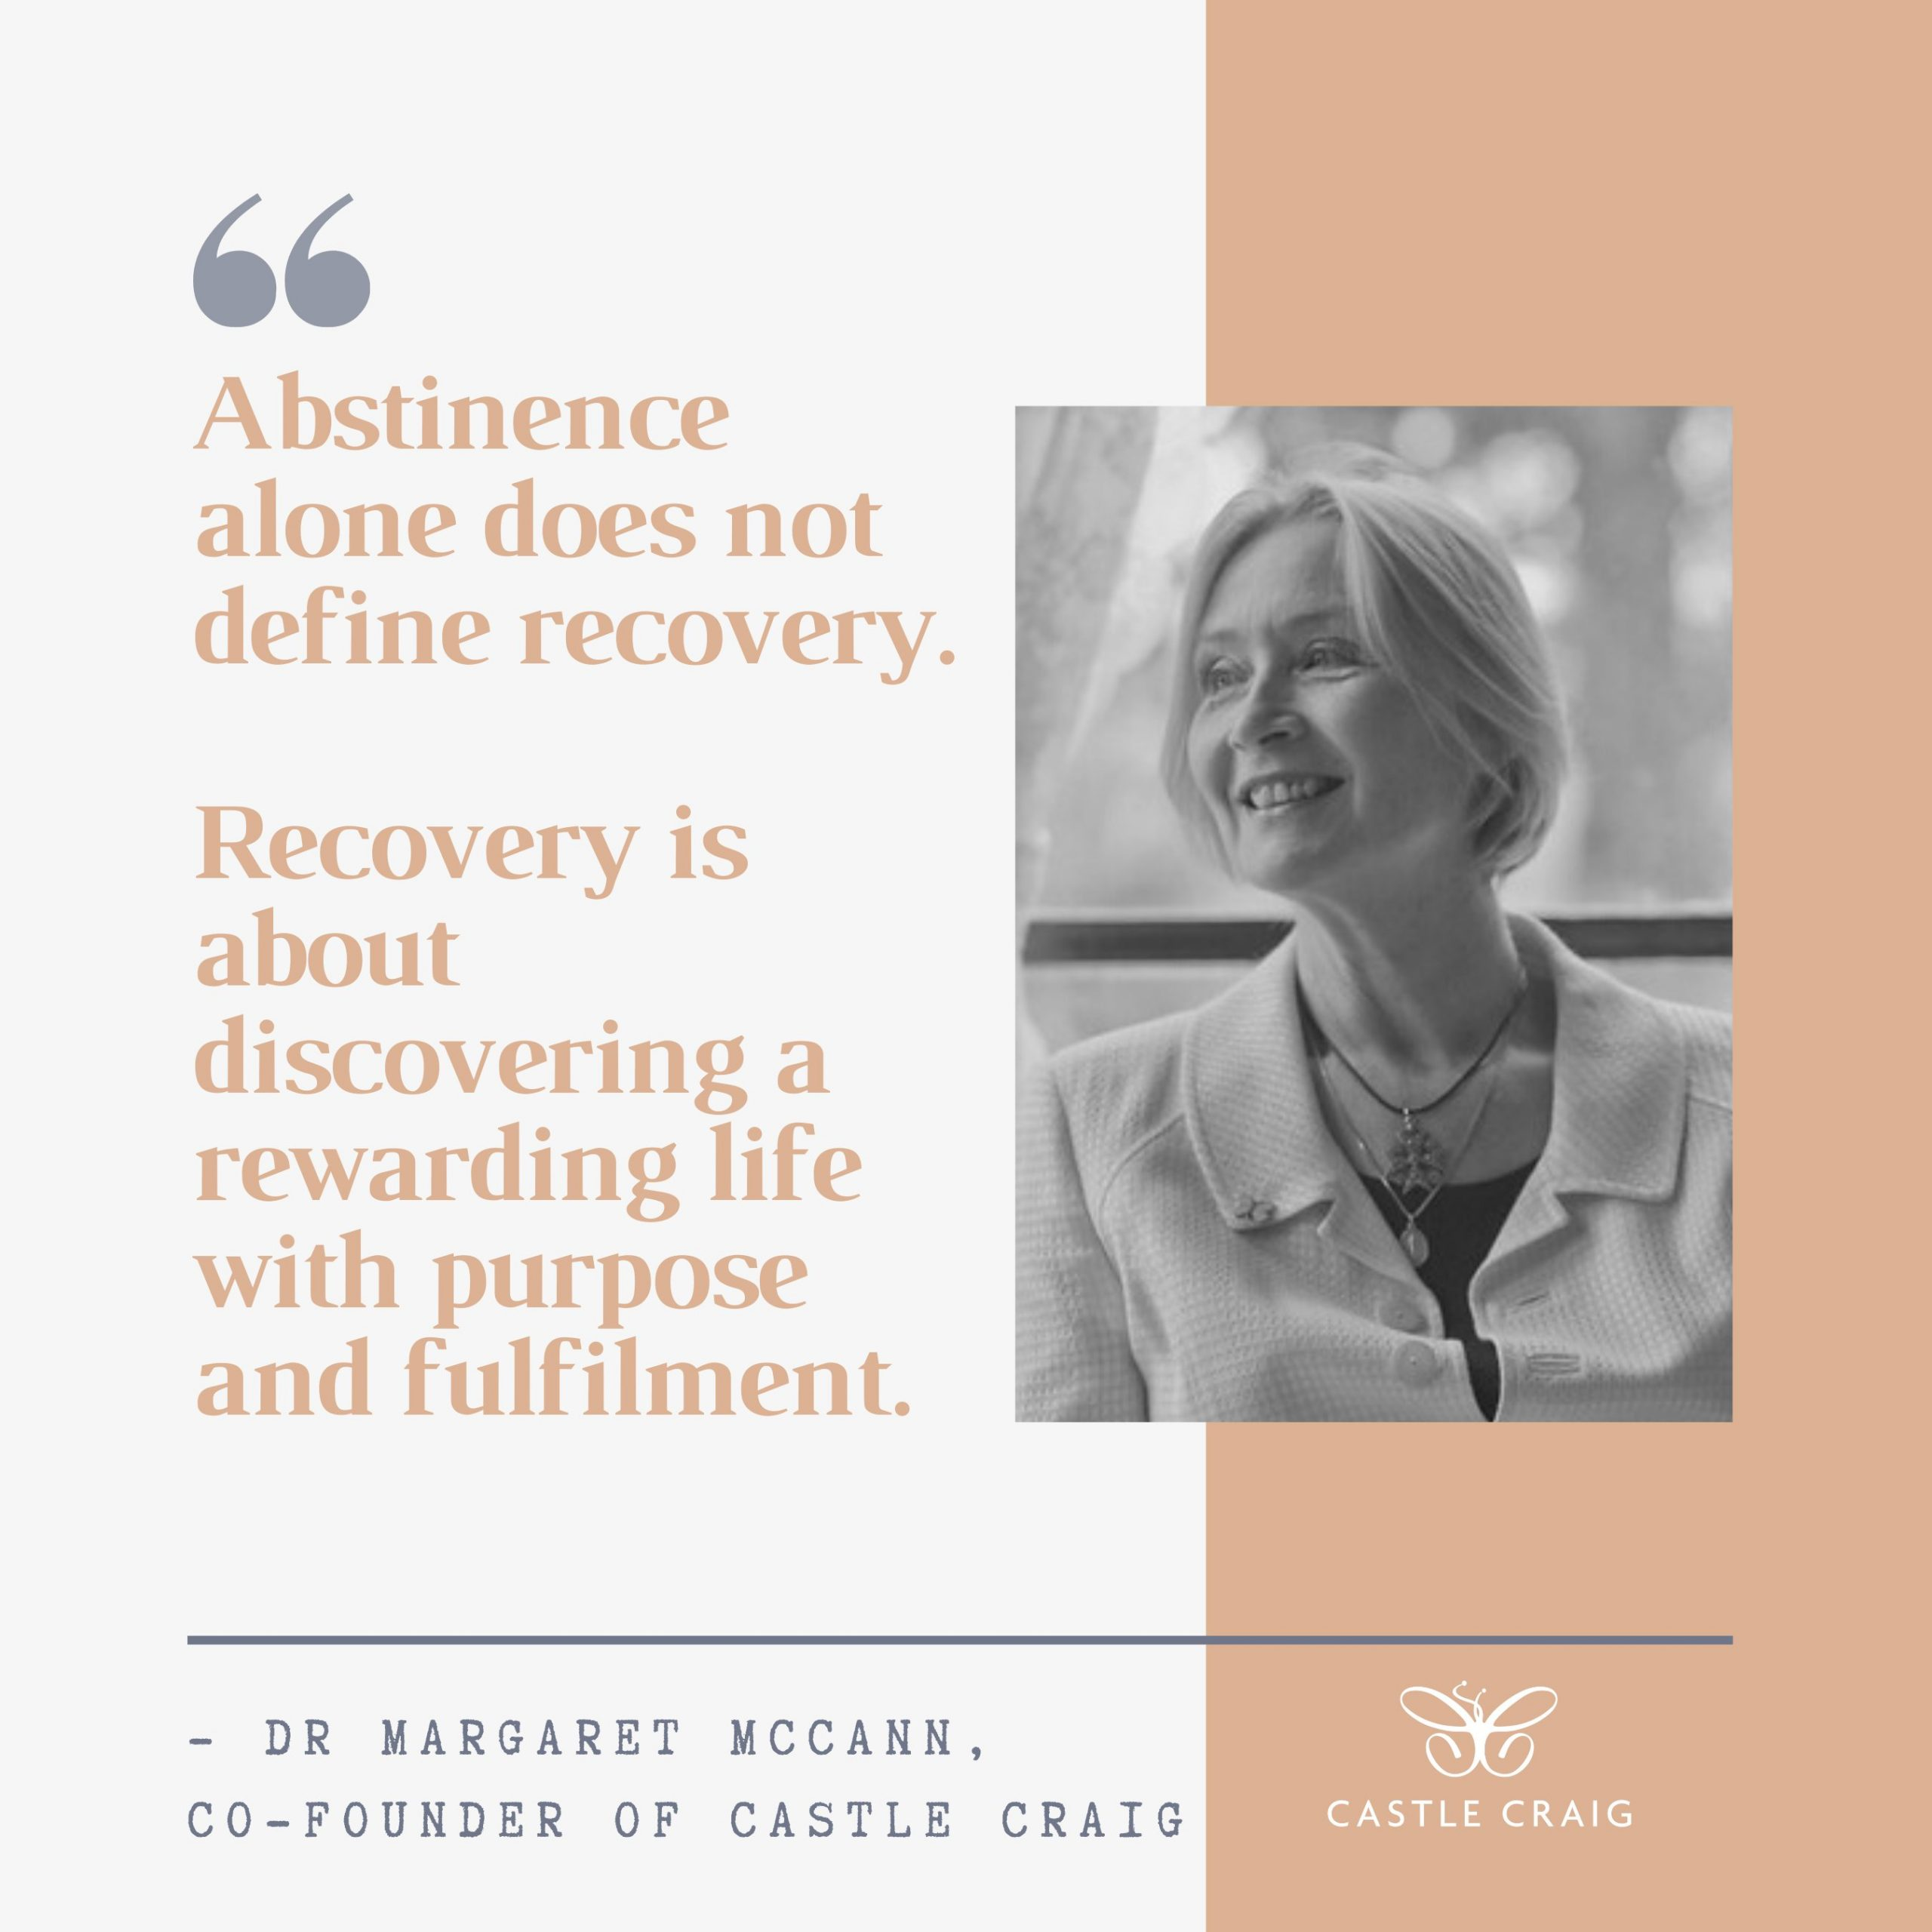 The Importance of Recovery from Addiction